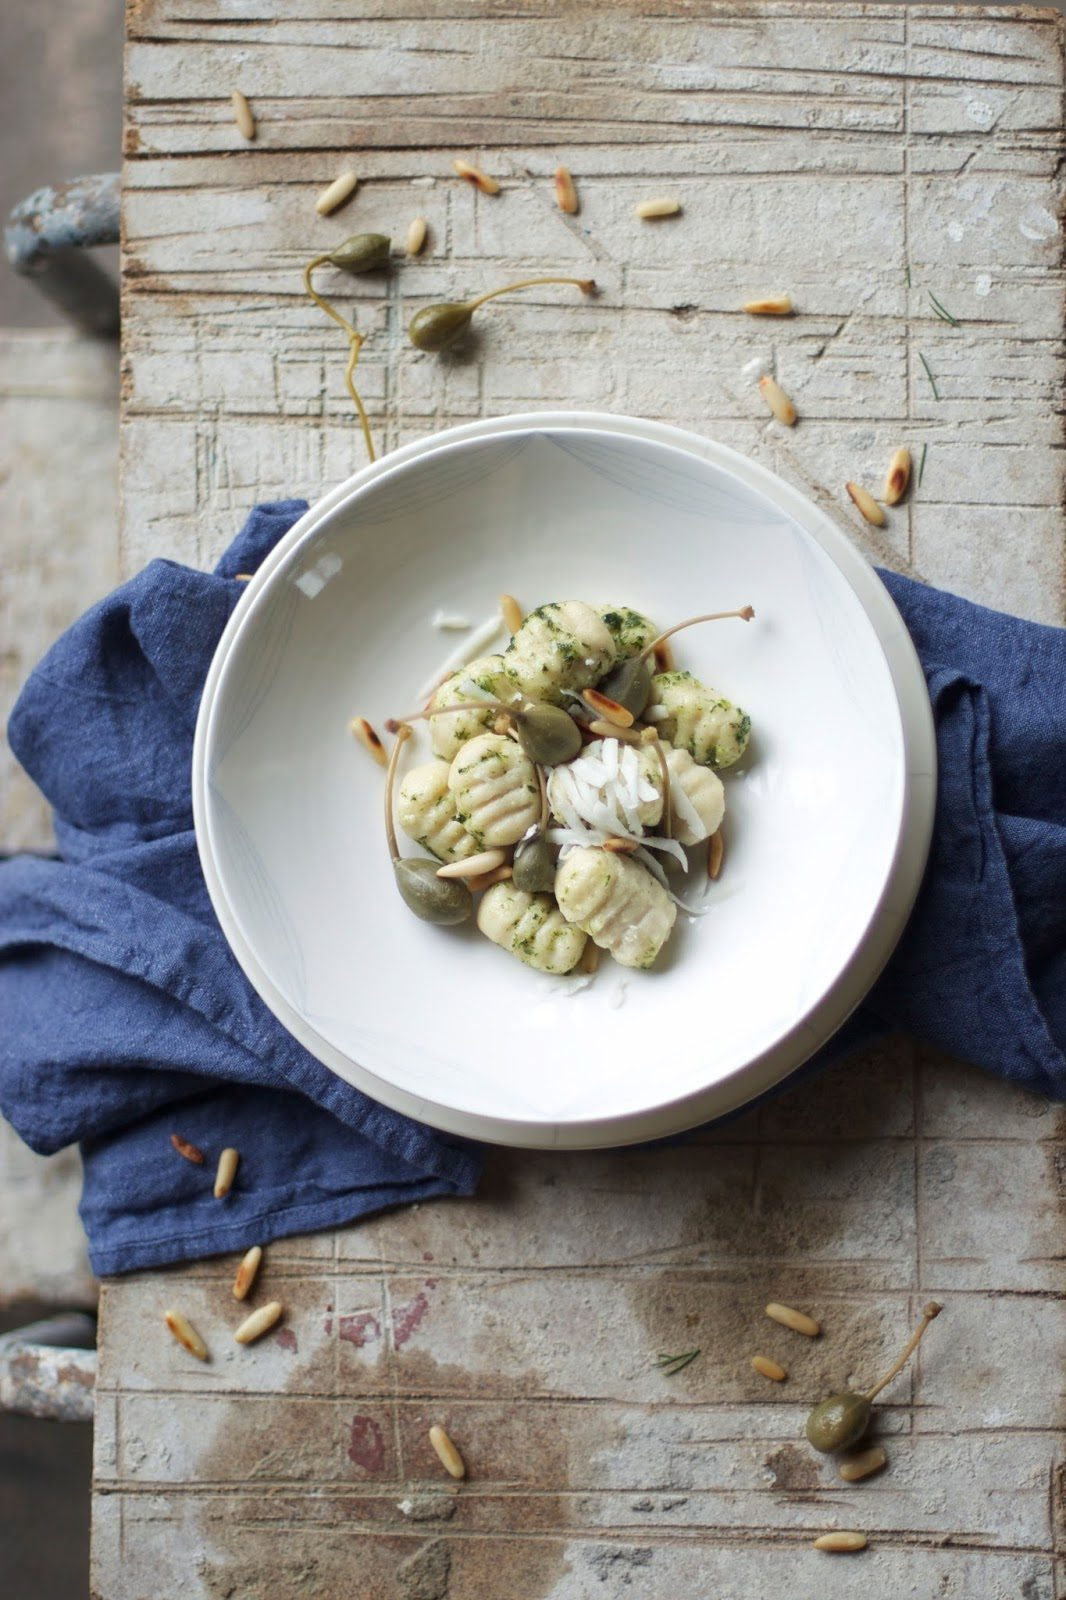 Gluten-free Gnocchi with Green Pesto and Capers